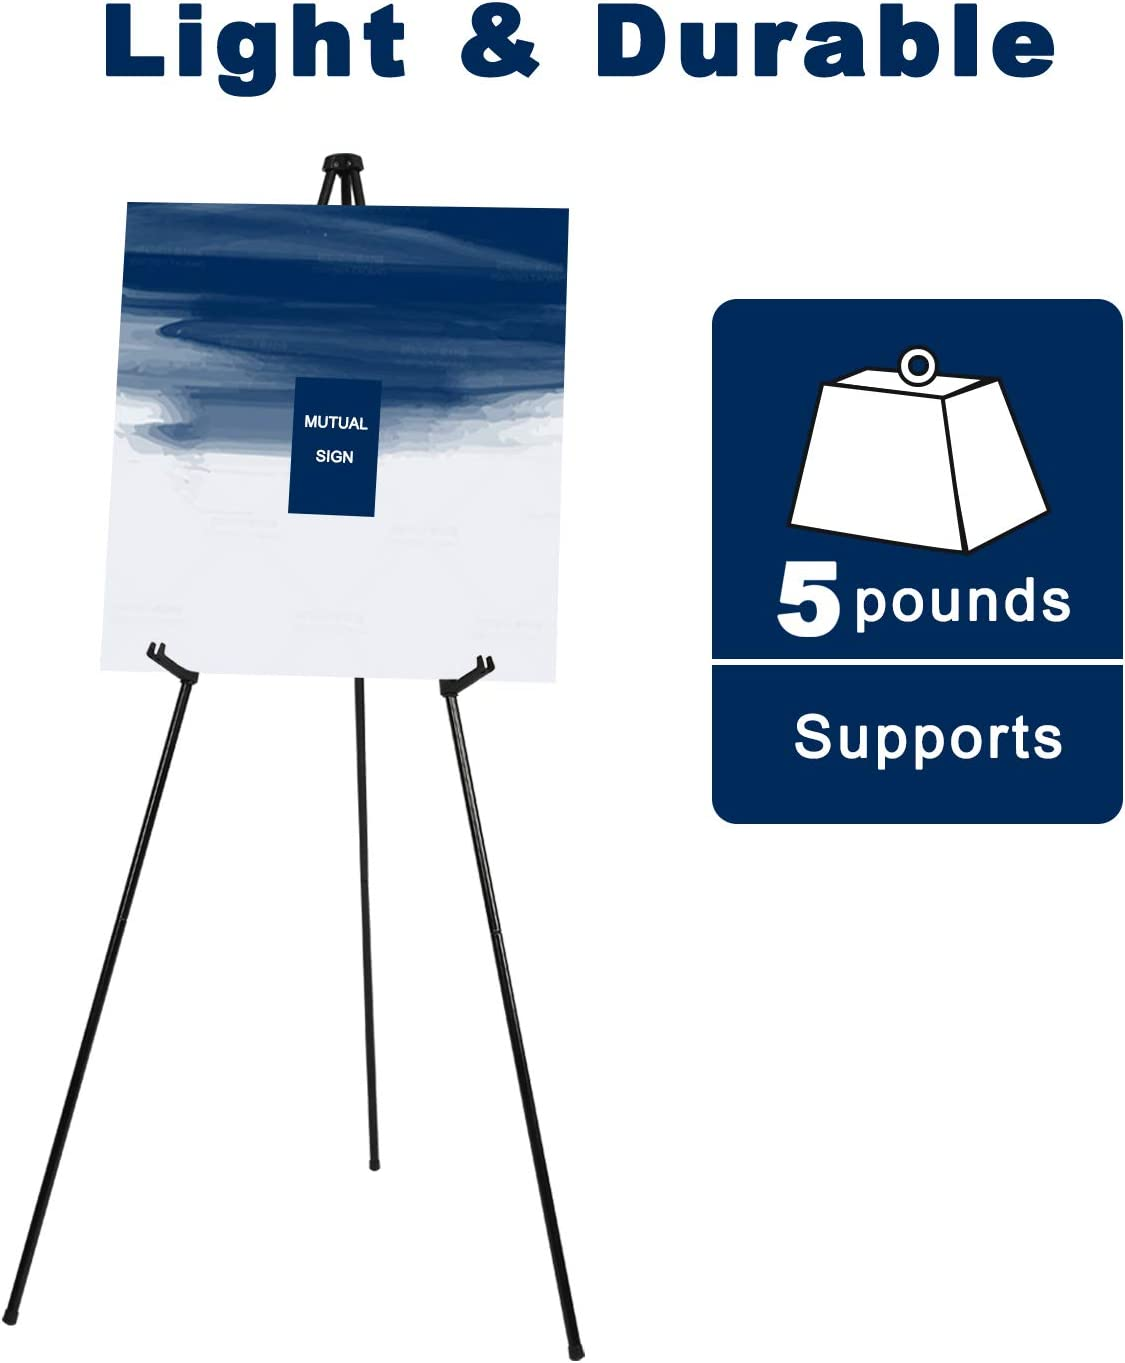 Presentations Posters Art Displays Folding Easel,Portable Tripod,Black Floor Standing Poster Easel,Lightweight Metal Adjustable Display Easel,Base 63 Max,Collapsible Easel for Trade Shows